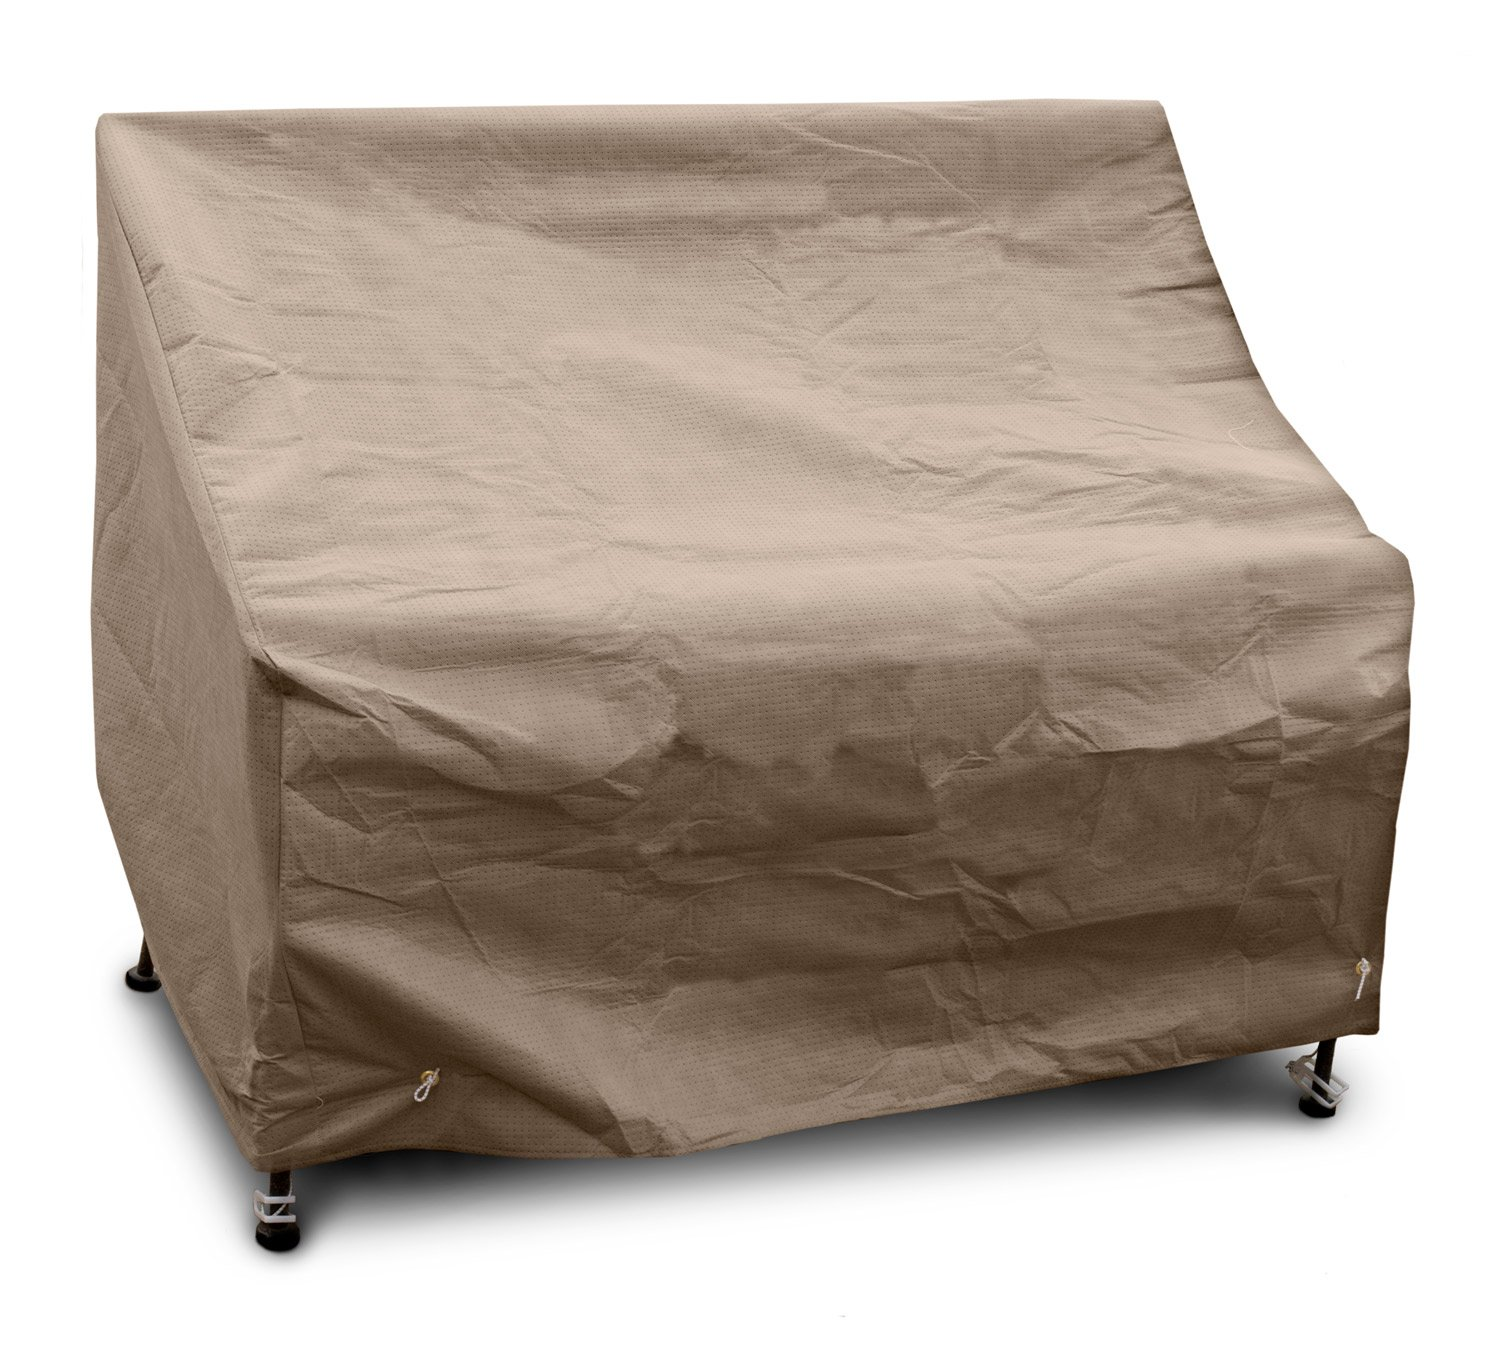 KoverRoos III 34204 5-Feet Bench/Glider Cover, 75-Inch Width by 28-Inch Diameter by 37-Inch Height, Taupe